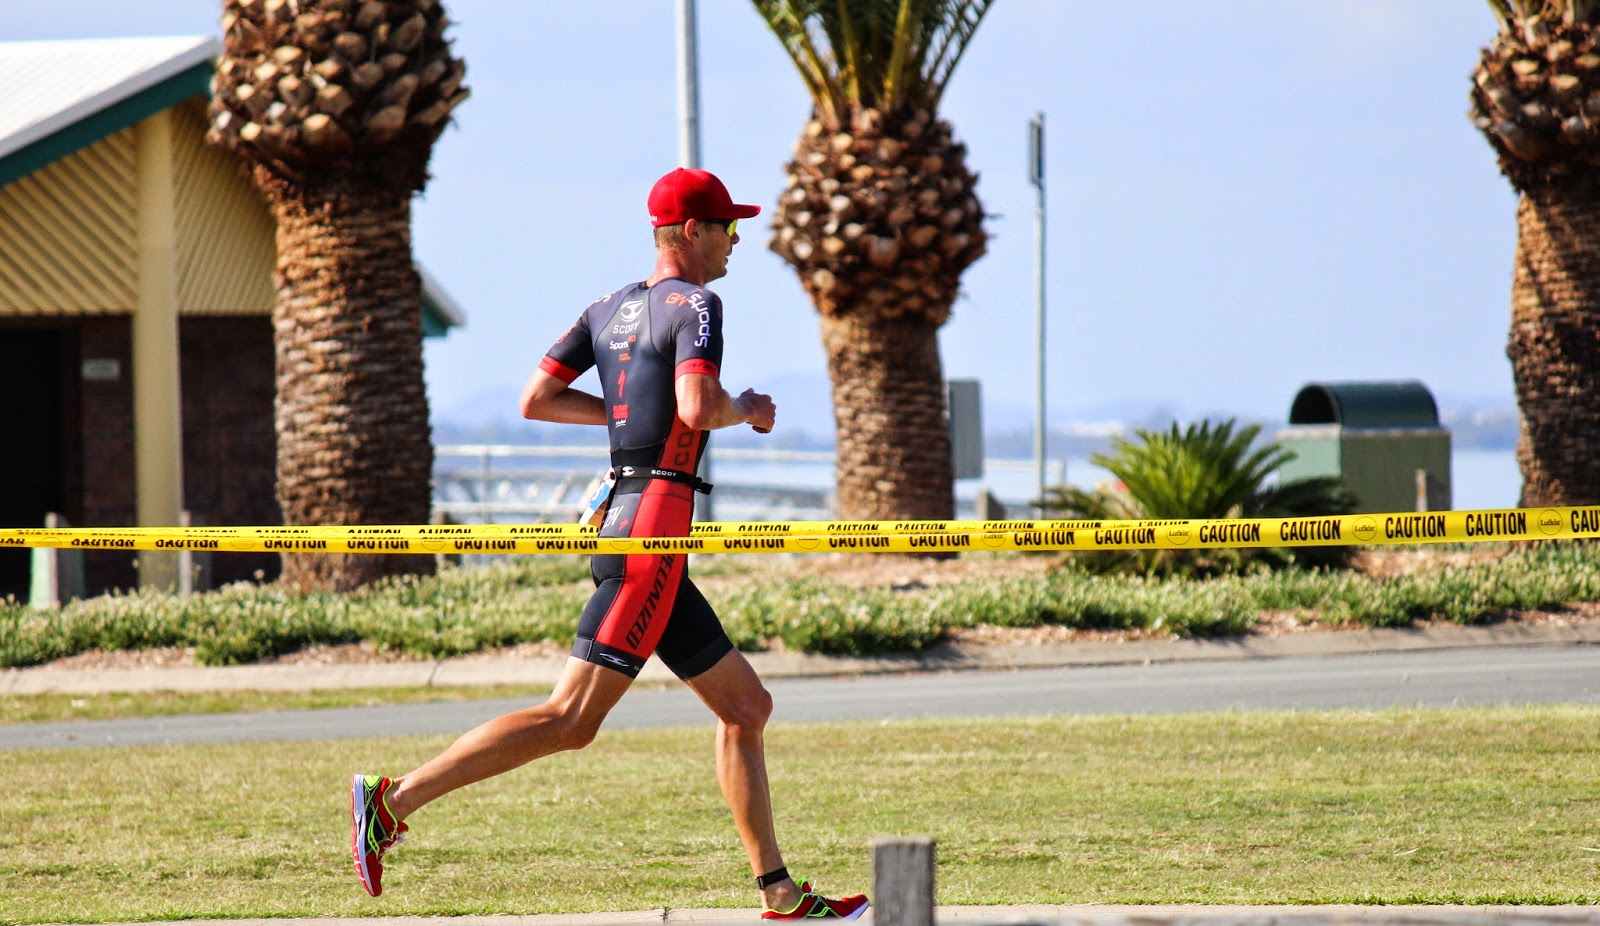 Atkinson takes Ironman 70.3 Cairns